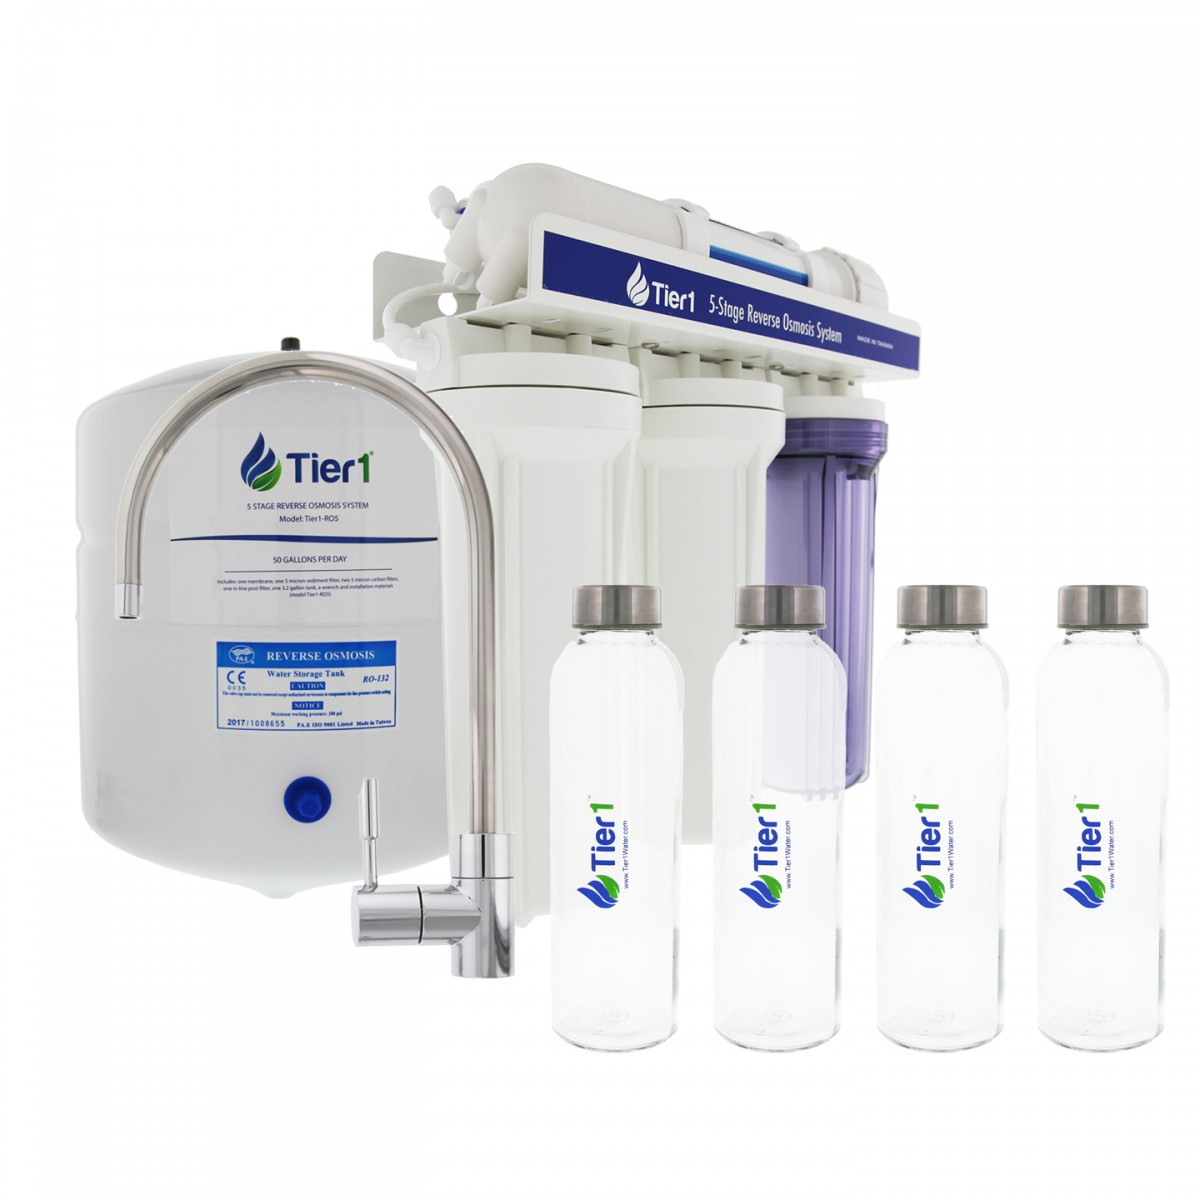 5 Stage Reverse Osmosis Home Drinking Water Filtration